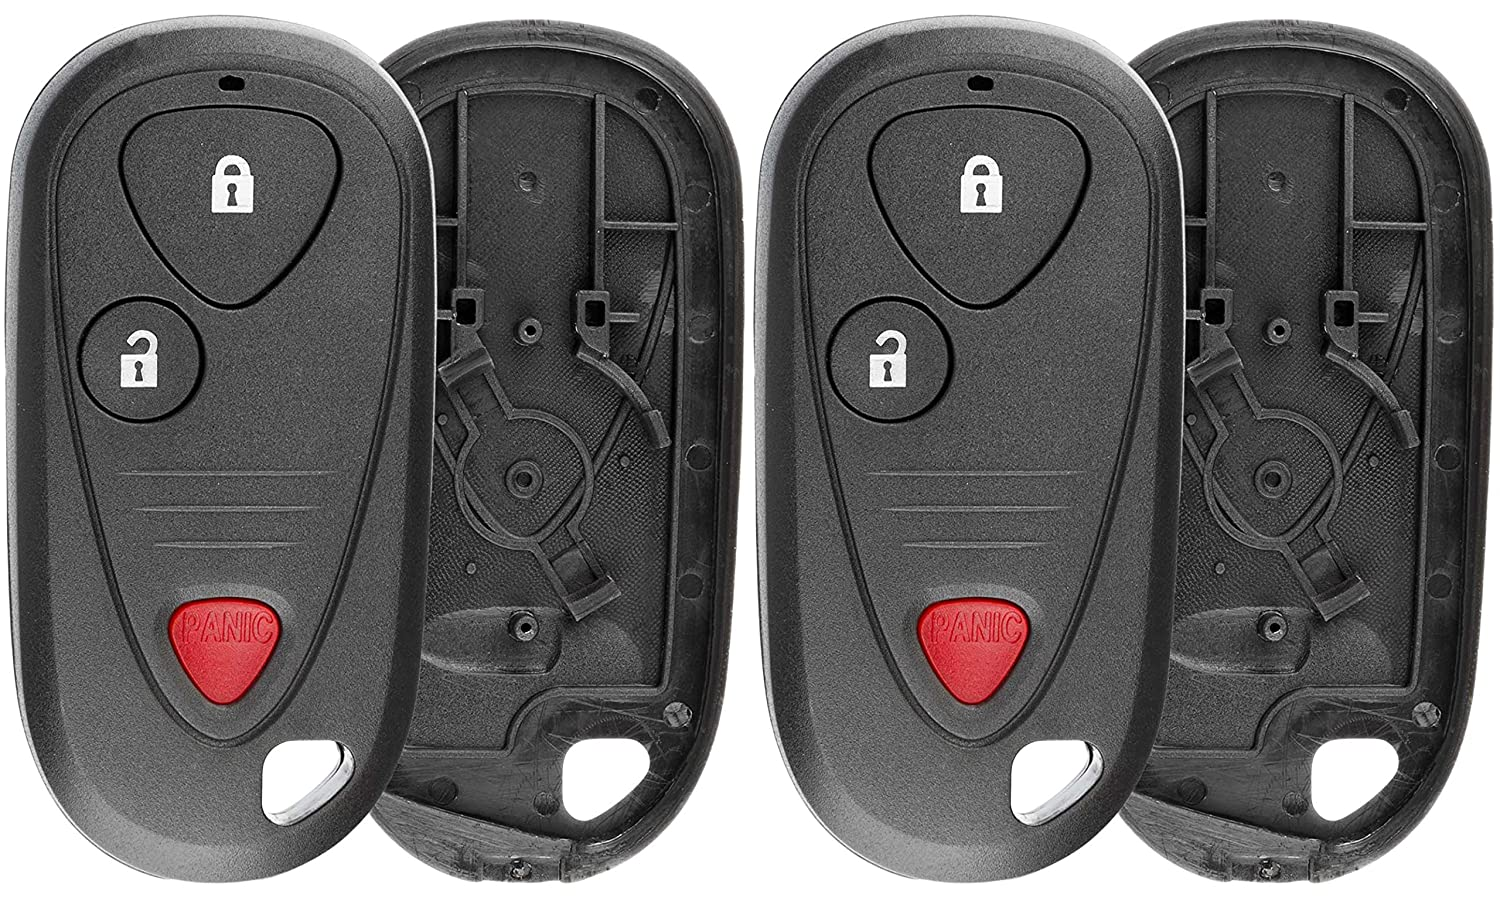 OUCG8D-355H-A KeylessOption Just the Case Keyless Entry Remote Control Car Key Fob Shell Replacement for OUCG8D-387H-A Pack of 2